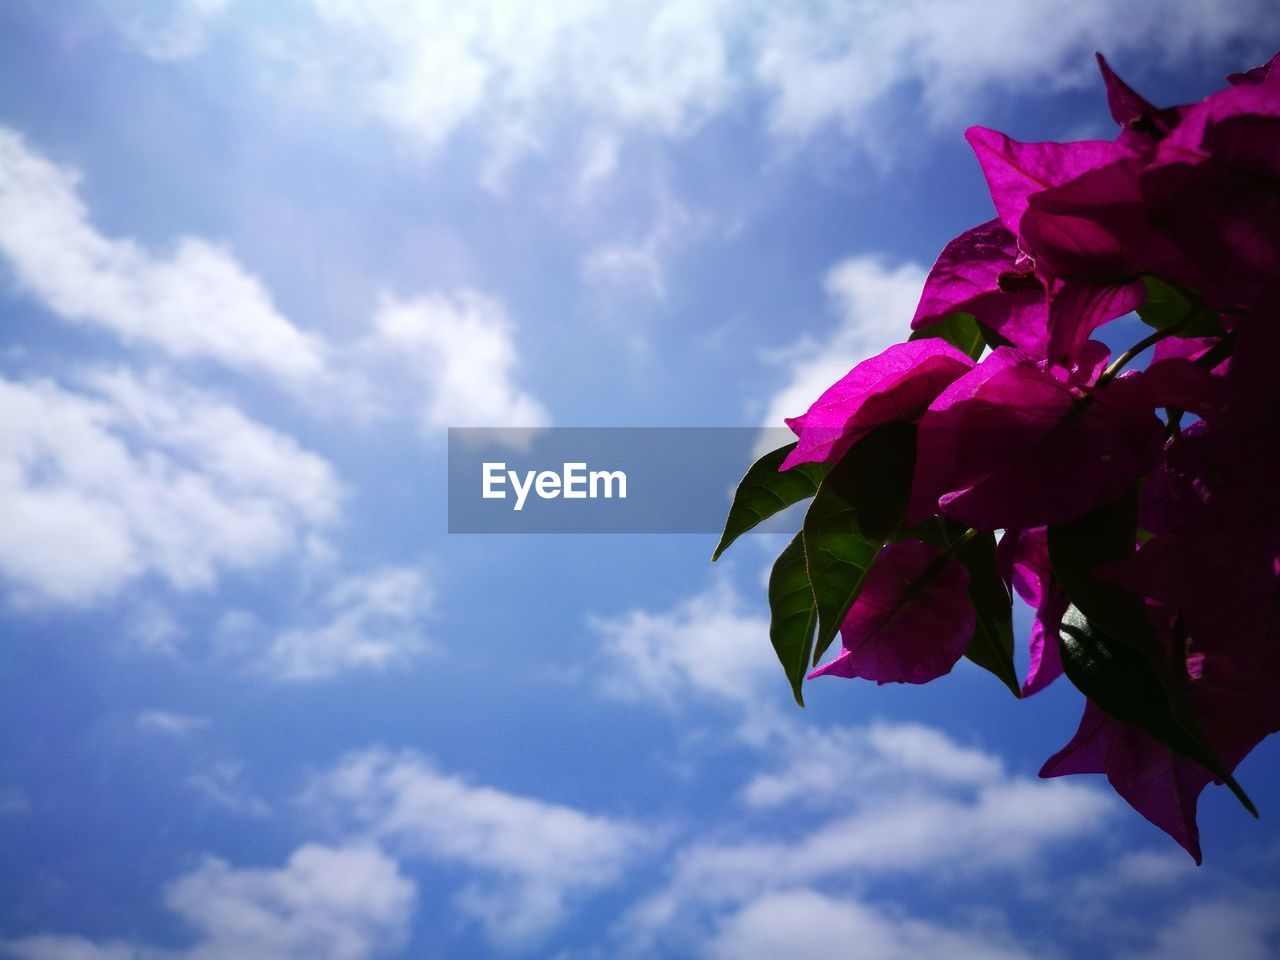 beauty in nature, flower, flowering plant, cloud - sky, plant, sky, vulnerability, fragility, growth, nature, pink color, petal, low angle view, freshness, close-up, leaf, flower head, no people, day, plant part, outdoors, purple